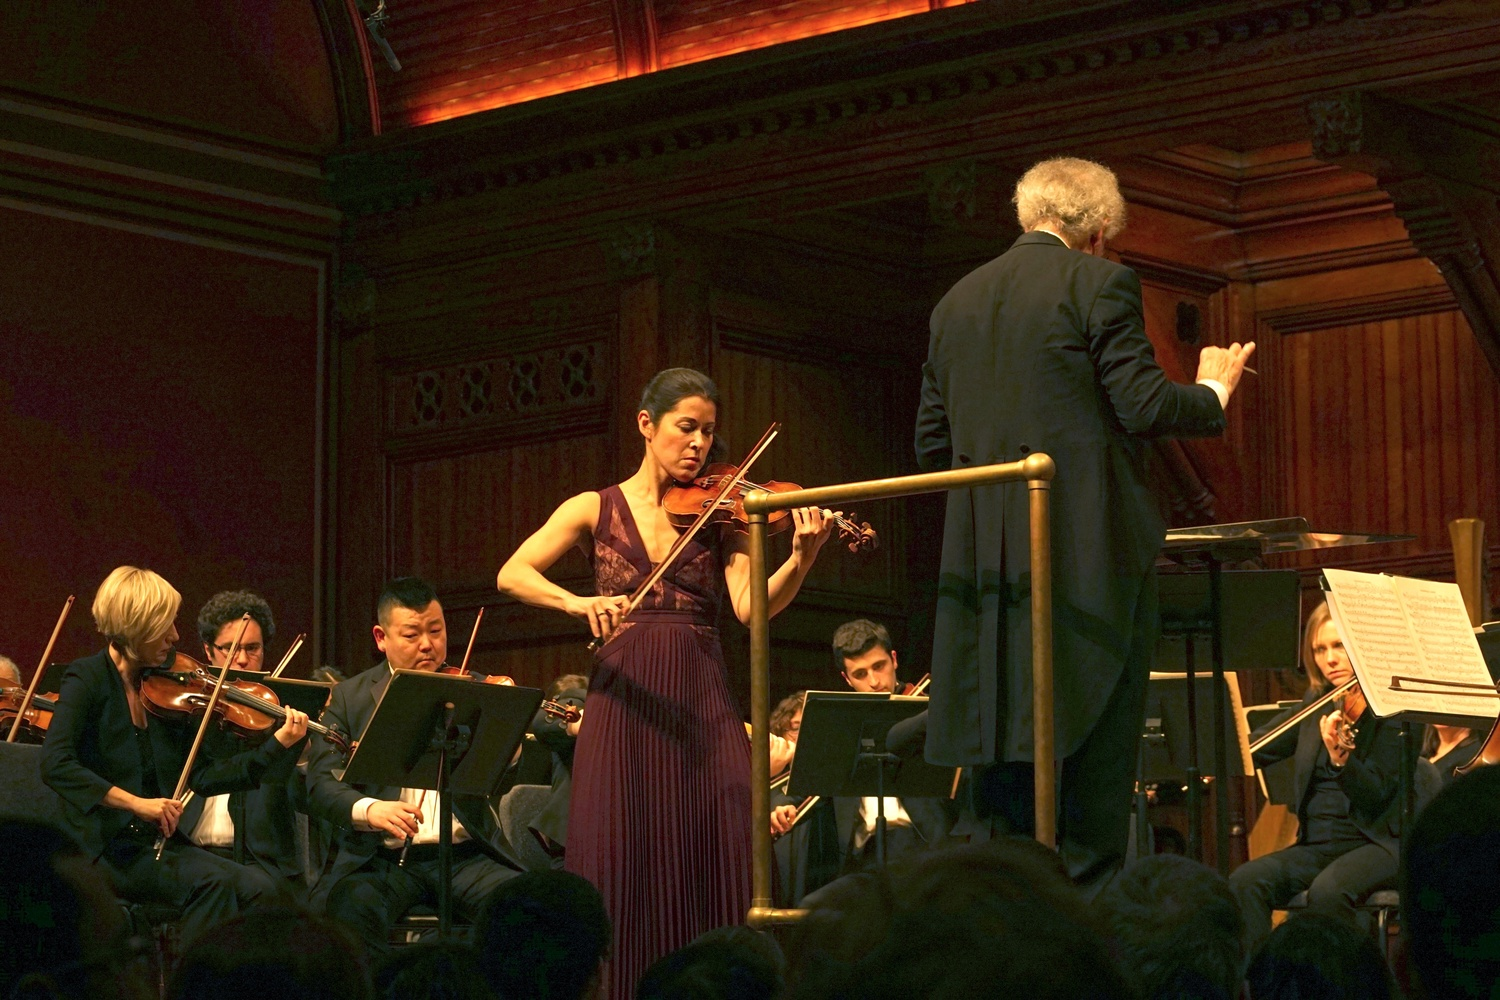 Benjamin Zander conducted the Boston Philharmonic Orchestra in a program with violinist Jennifer Frautschi in Sanders Theatre on Thursday evening.